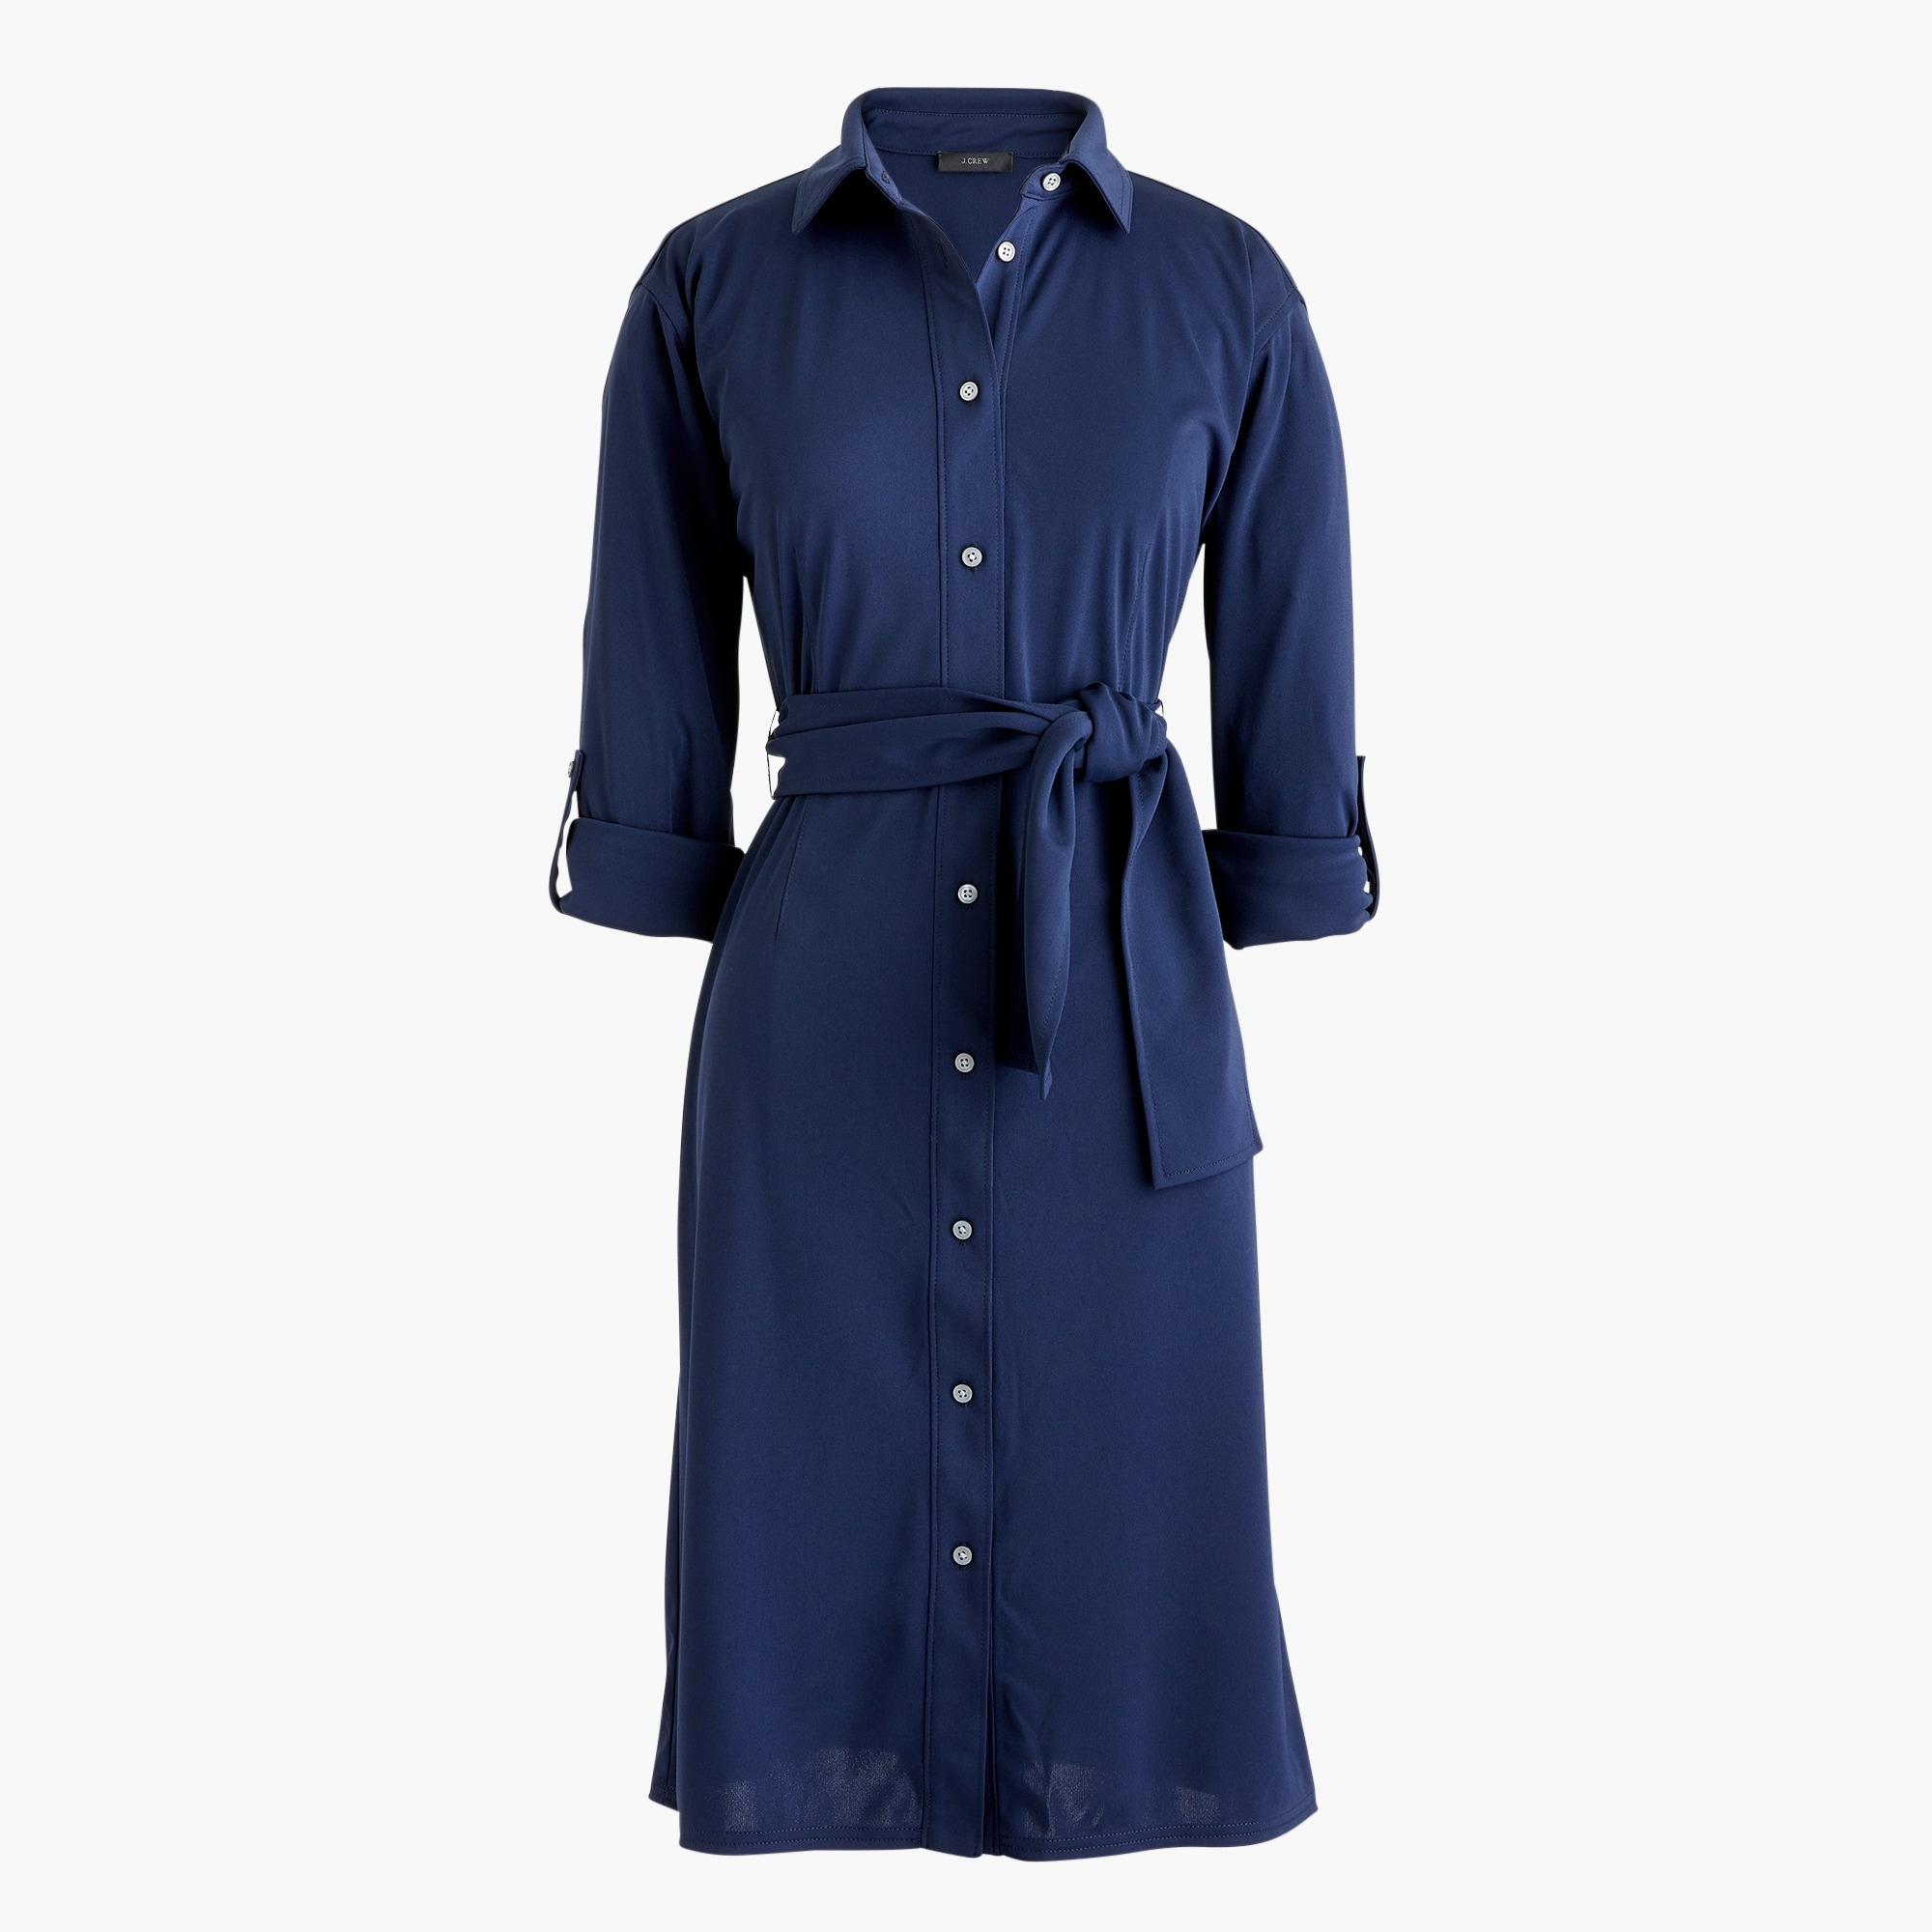 Tie-waist knit shirtdress